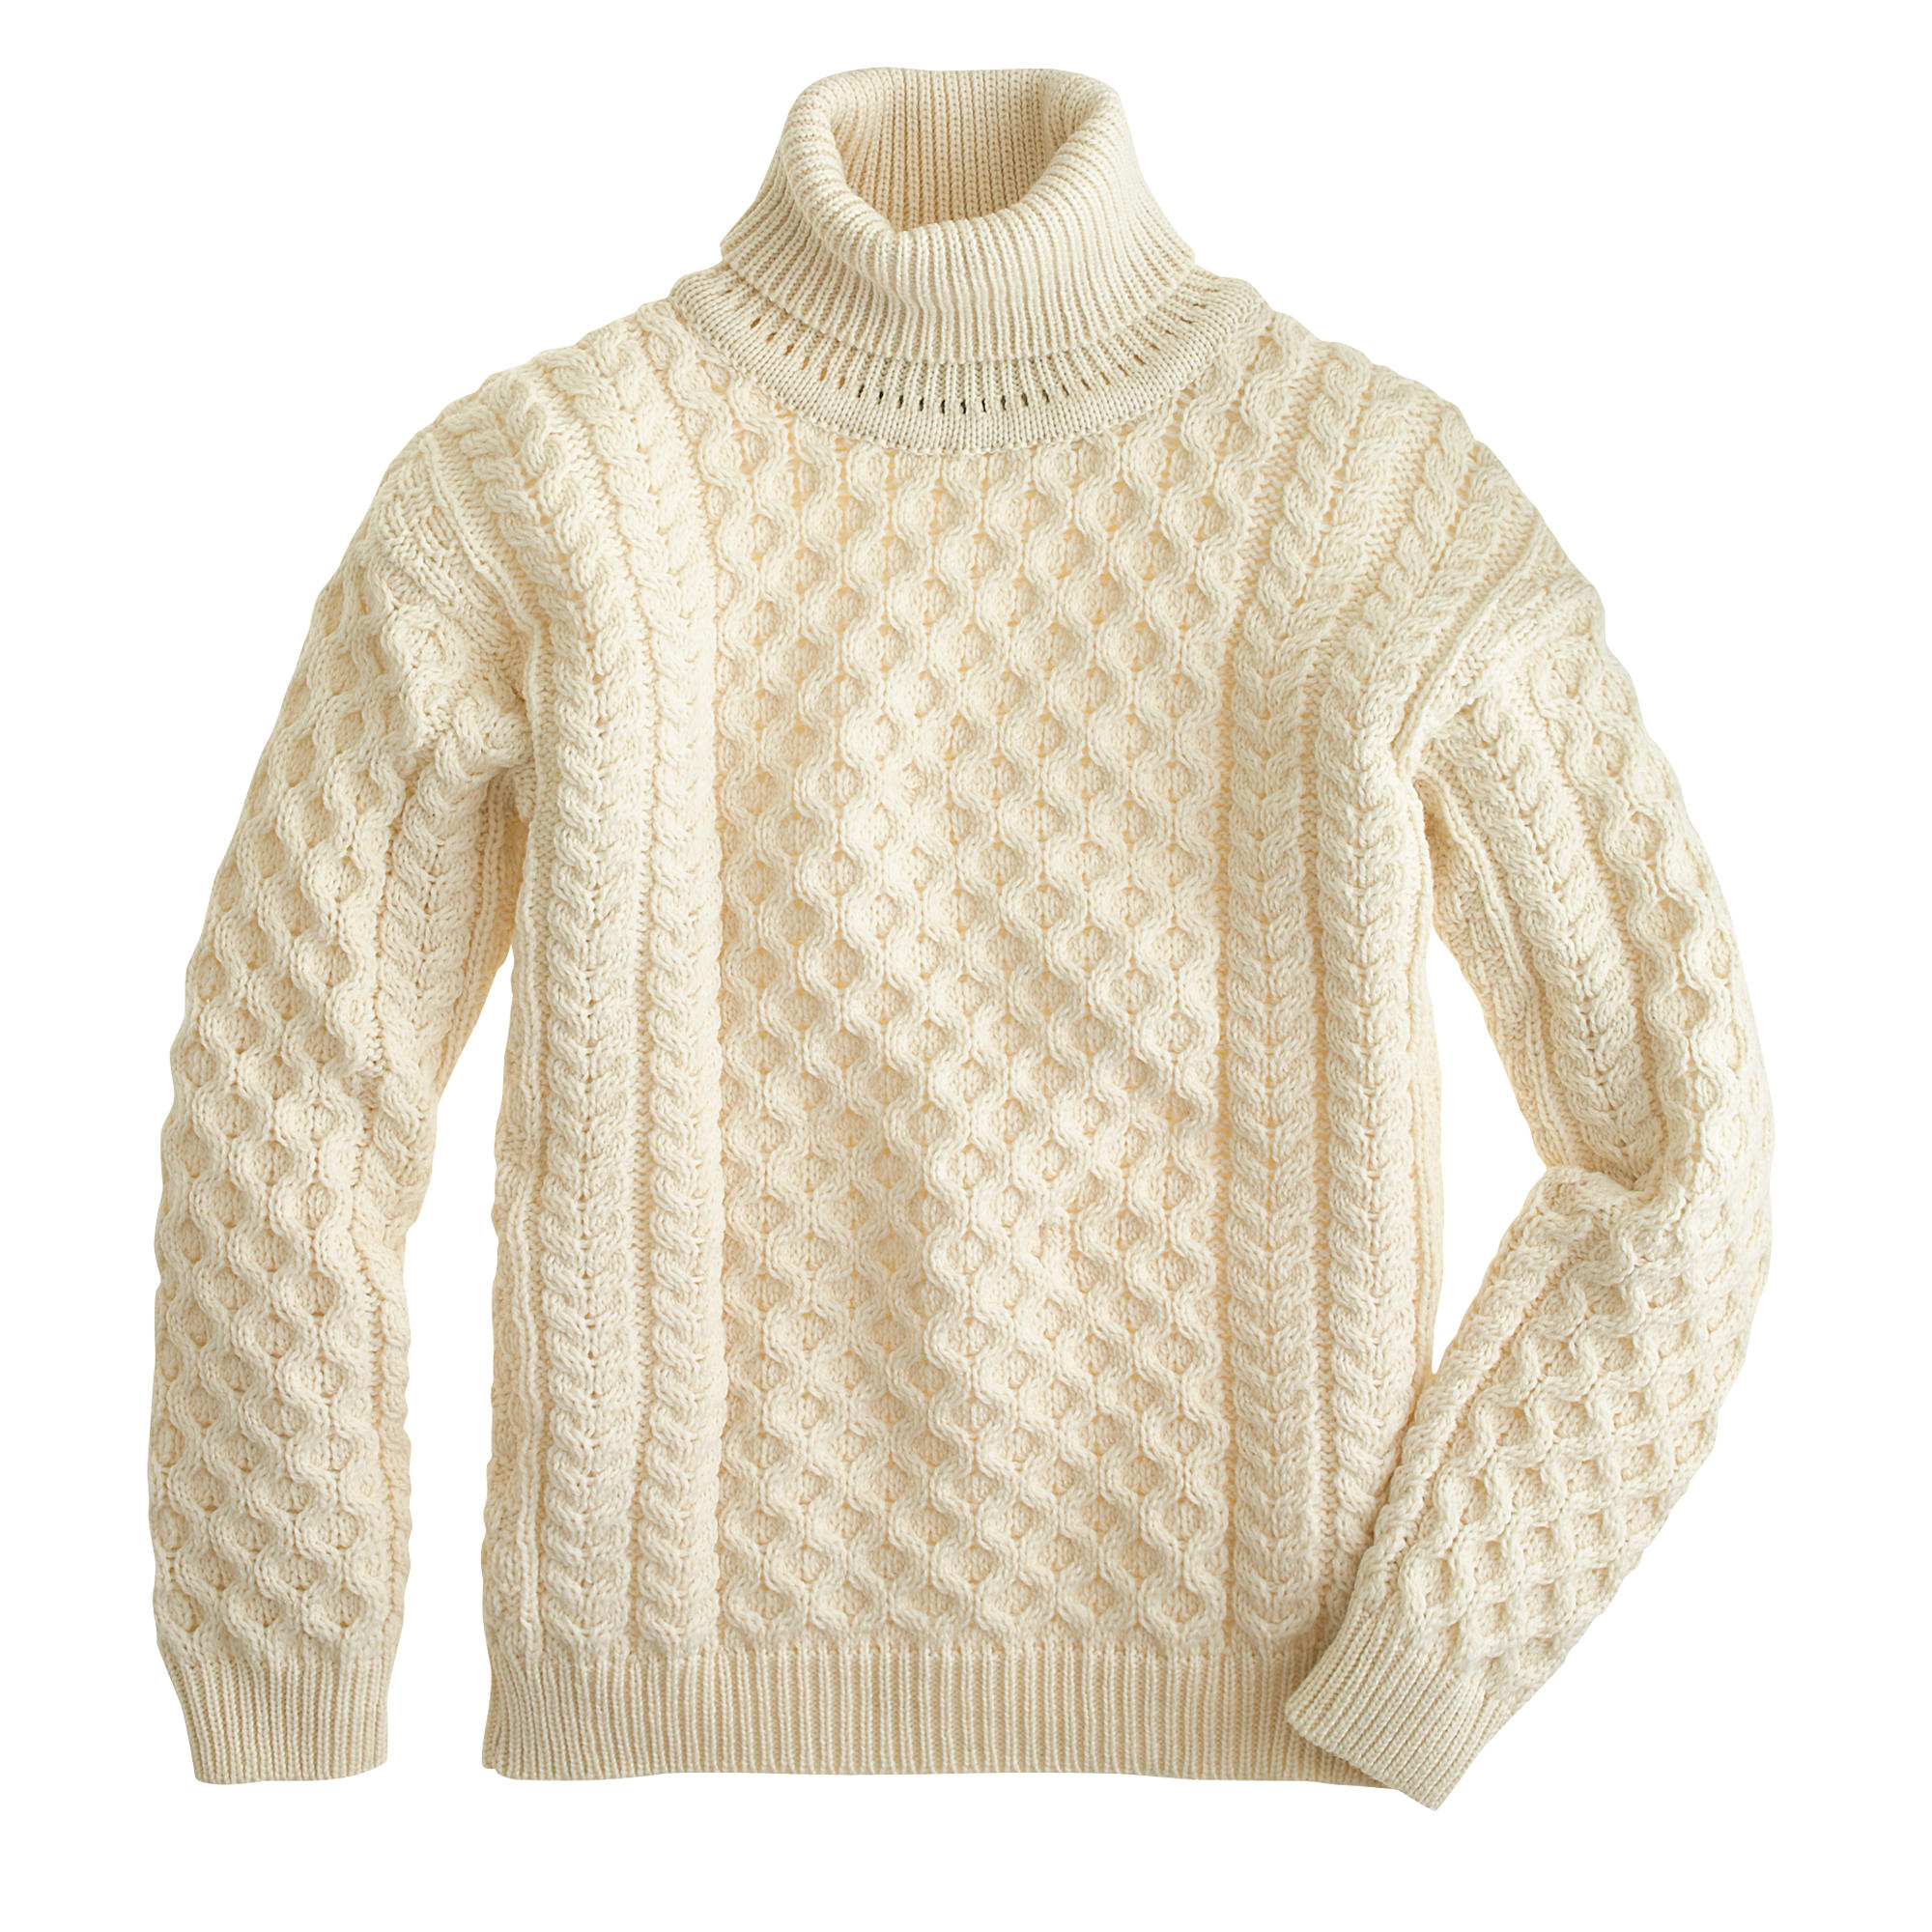 Aran crafts fisherman cable knit turtleneck sweater j for Aran crafts fisherman sweater